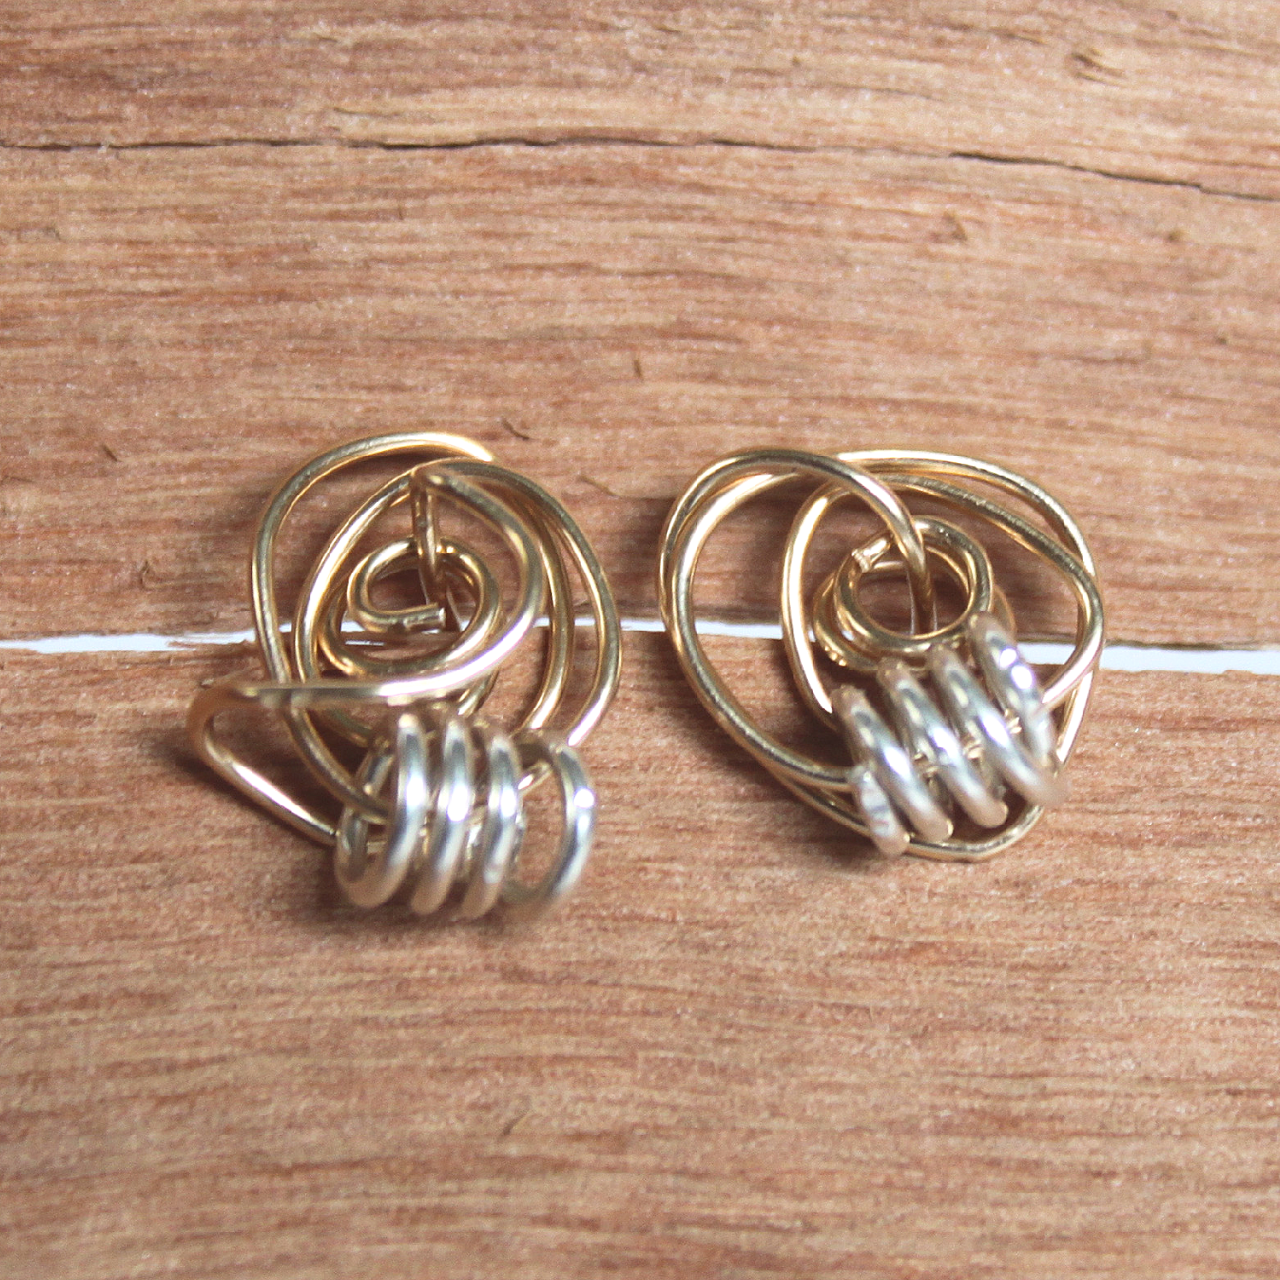 Twist & Shout Earrings